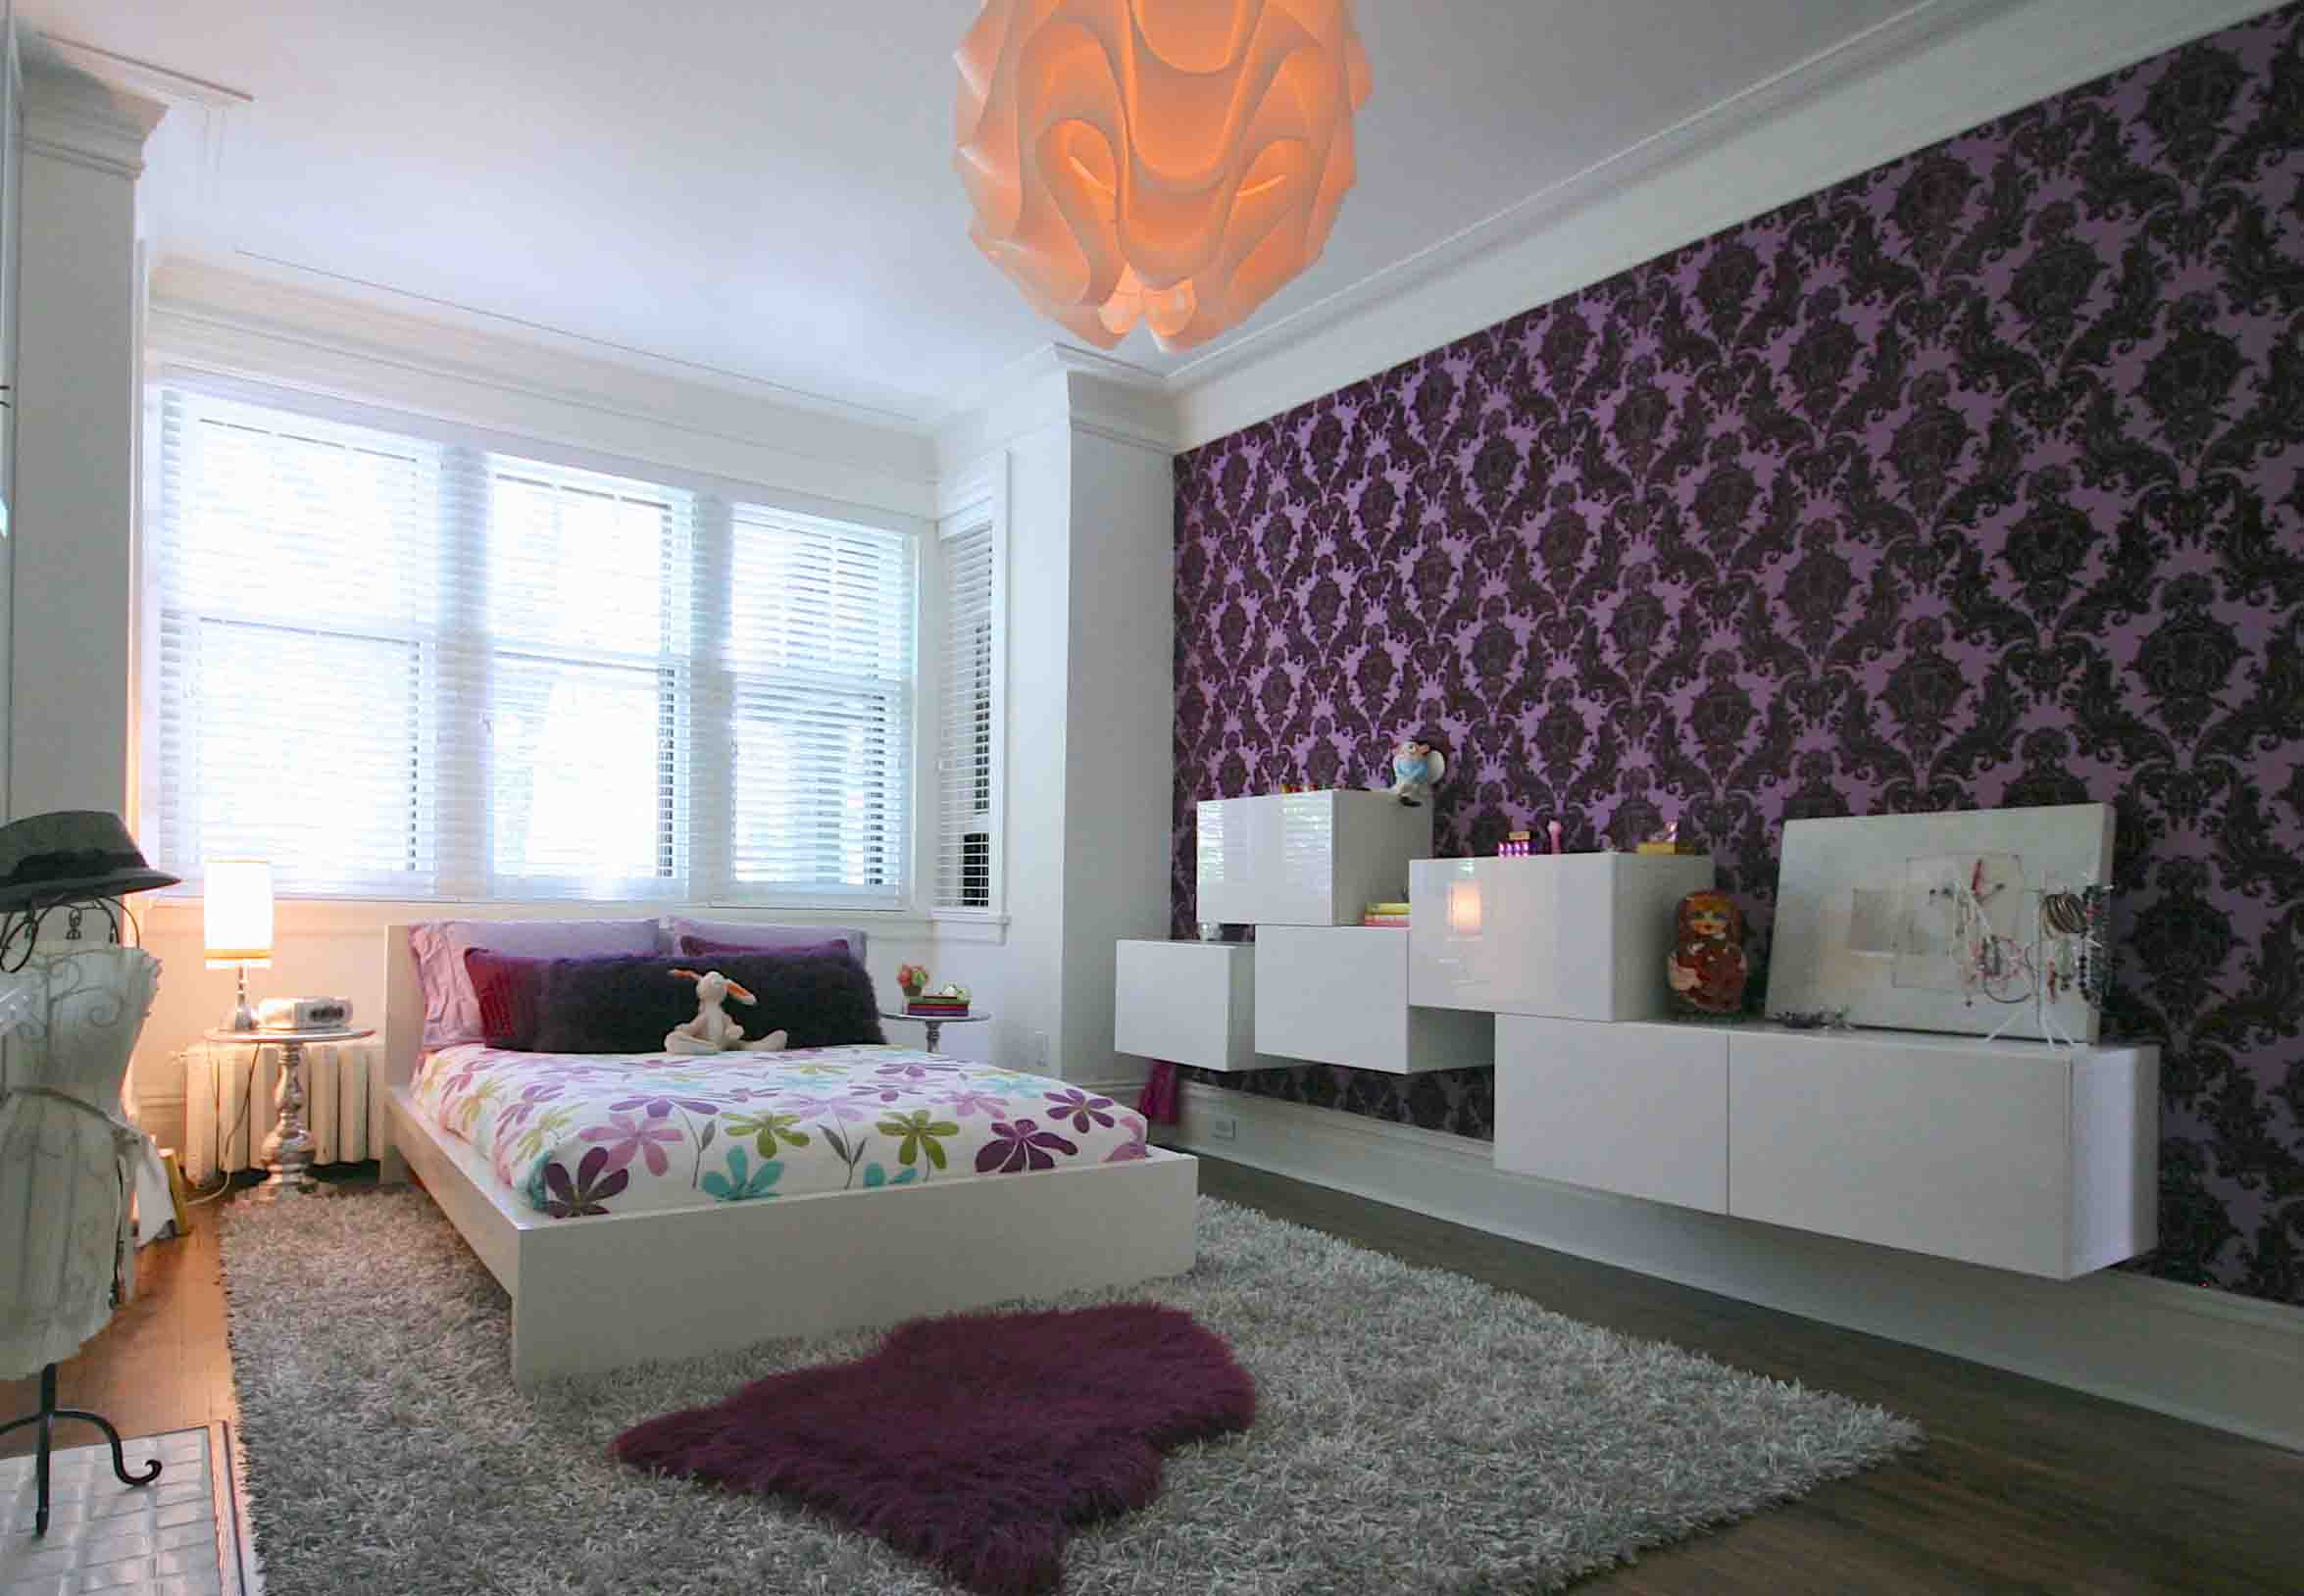 wallpaper the bedroom wall paper ideas new awesome modern for best  solutions design walls decorative switch